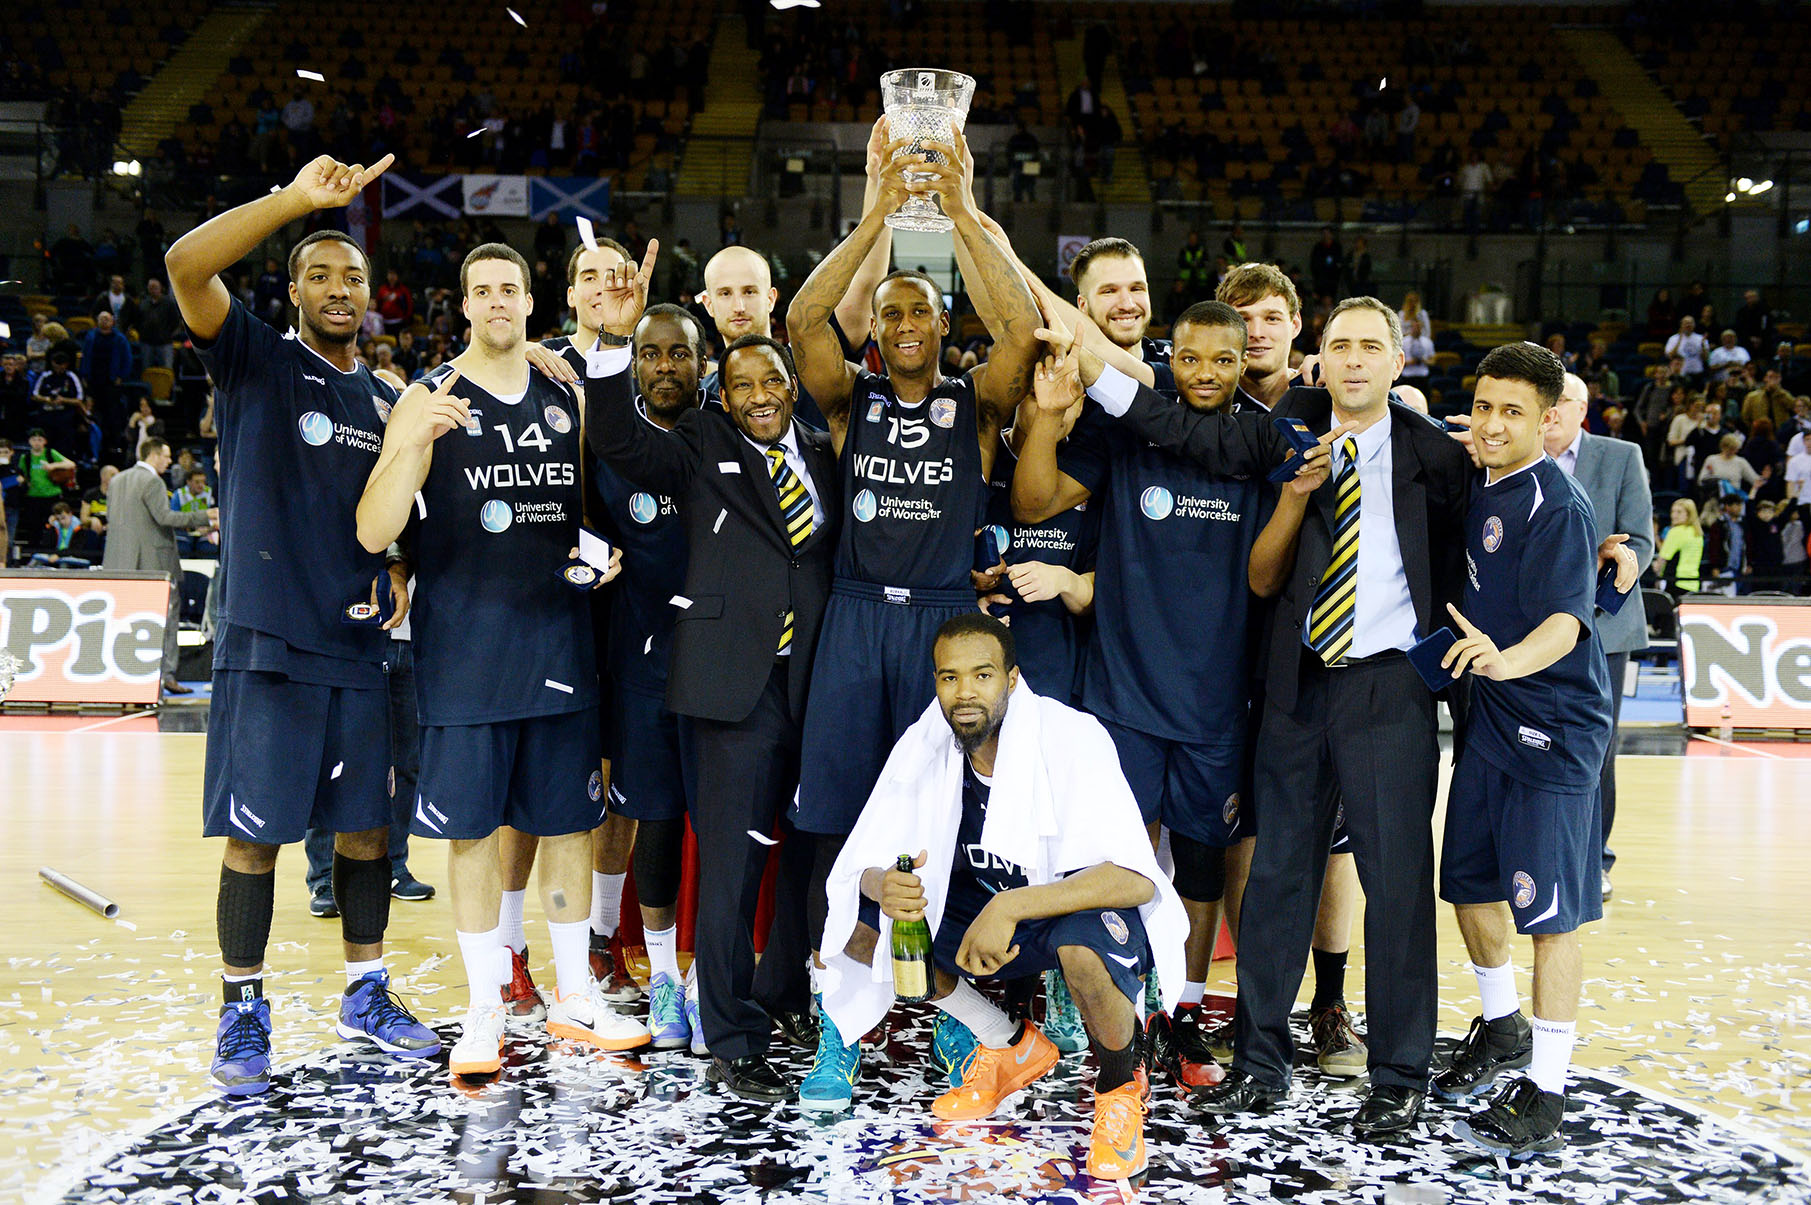 Worcester Wolves won a trophy at the weekend.